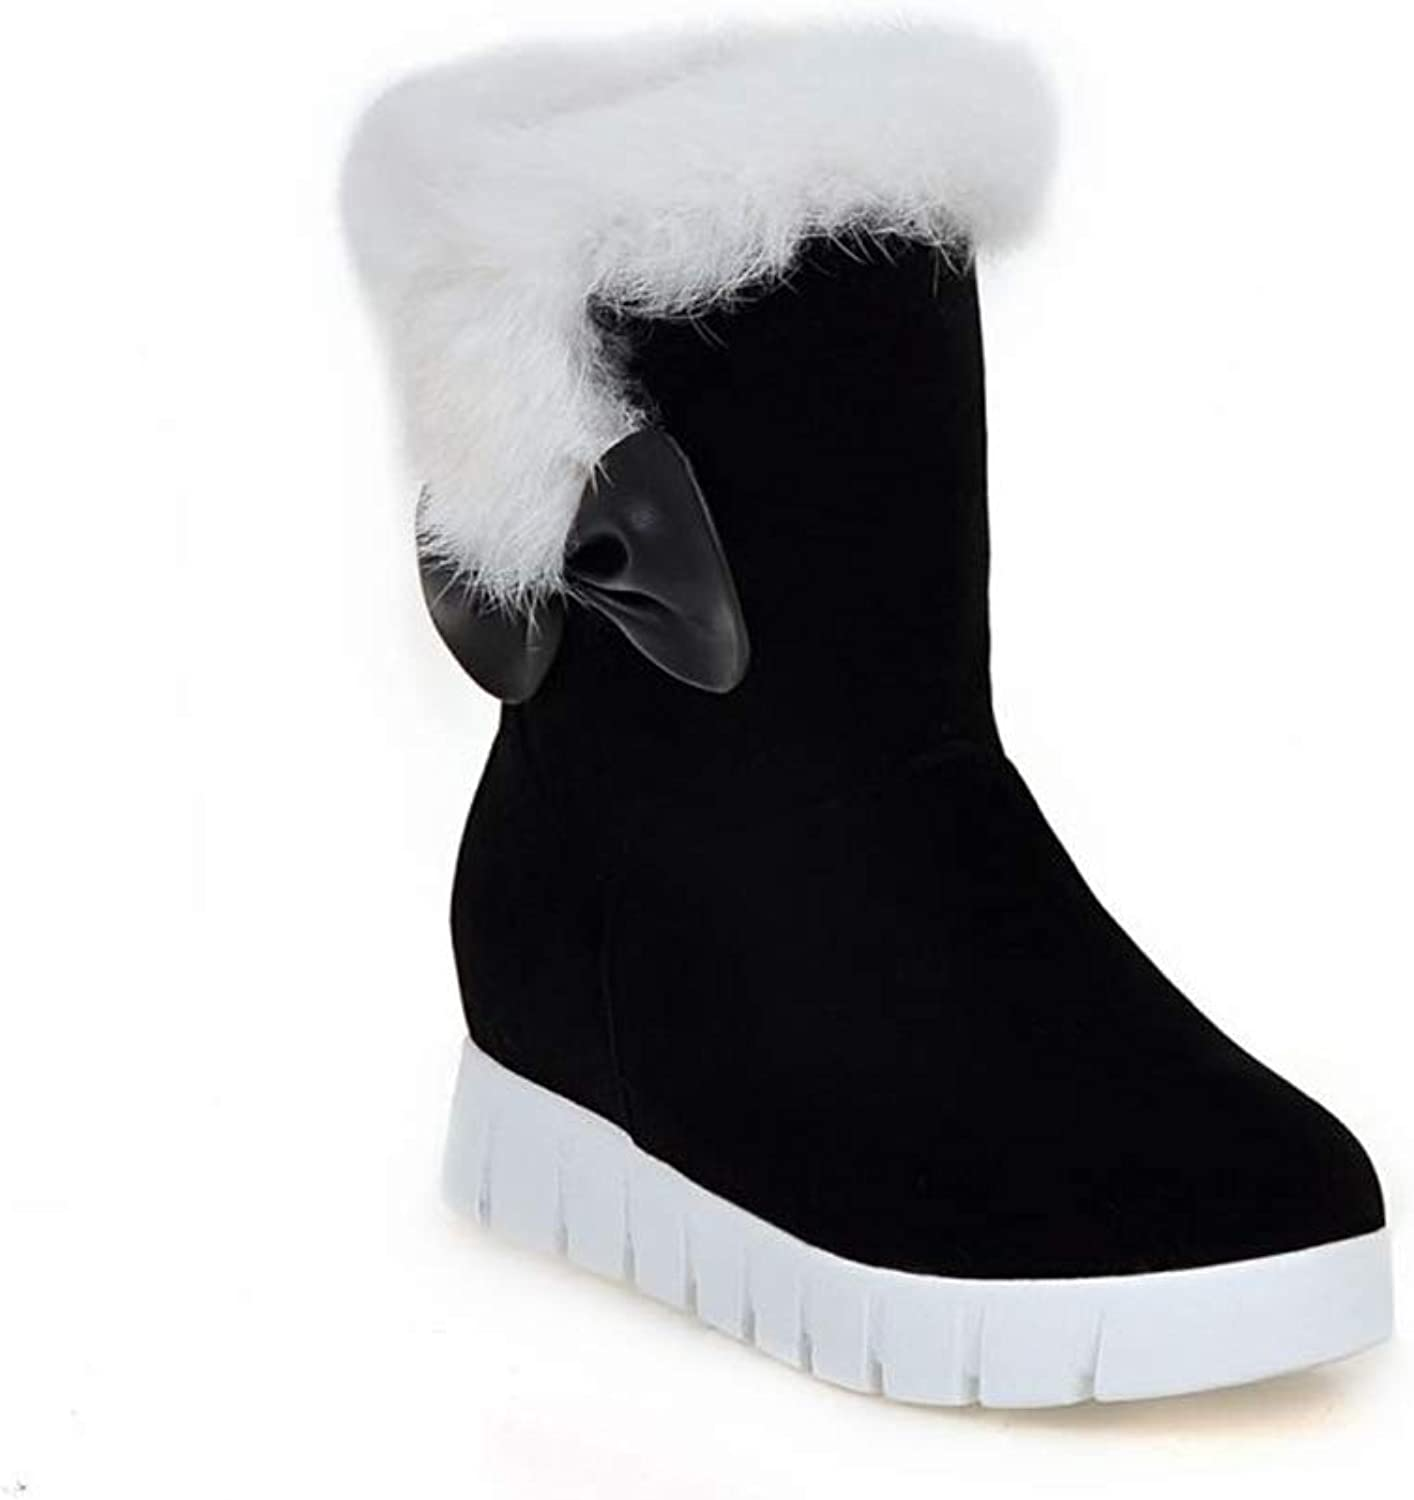 Women's Fashion Boot Winter Warm Short Bow Comfort Snow Boots shoes